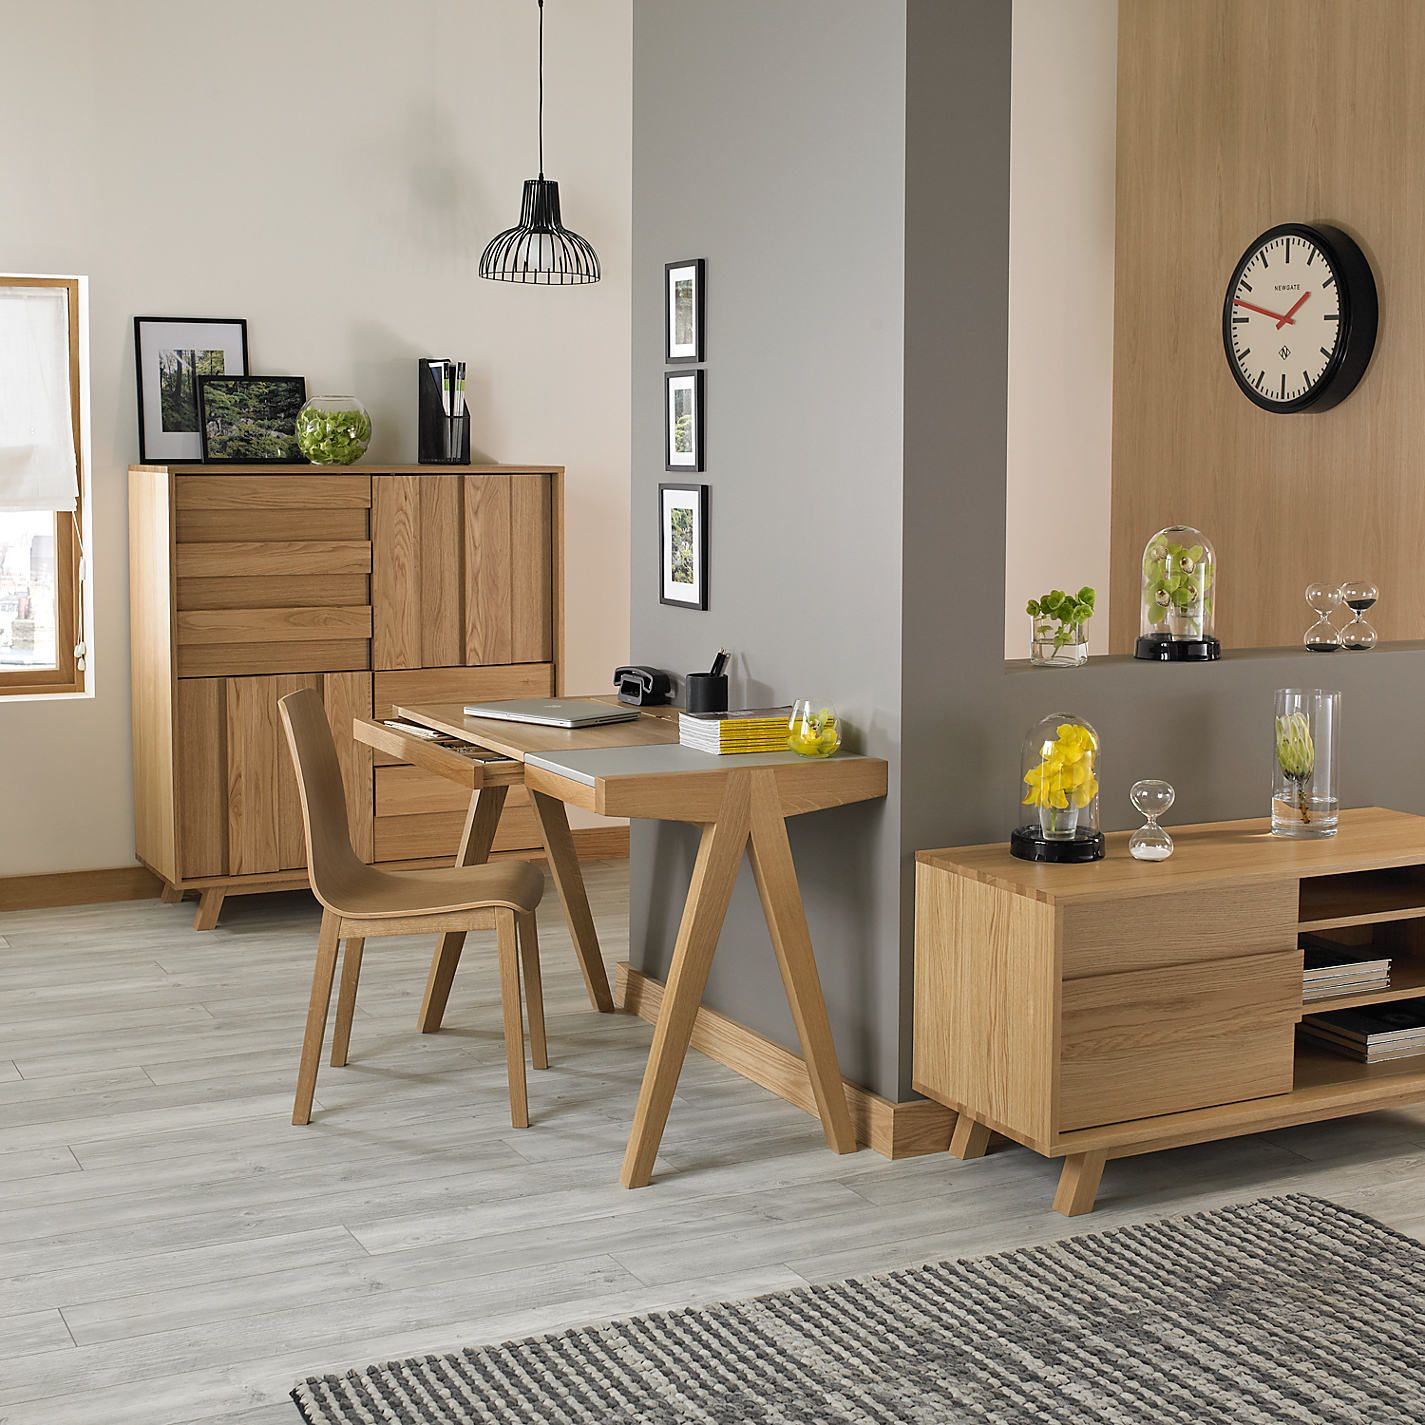 Oak Furniture Set Living Room With Loveseat And Chair Grey Wood Flooring Google Search Condo Designs